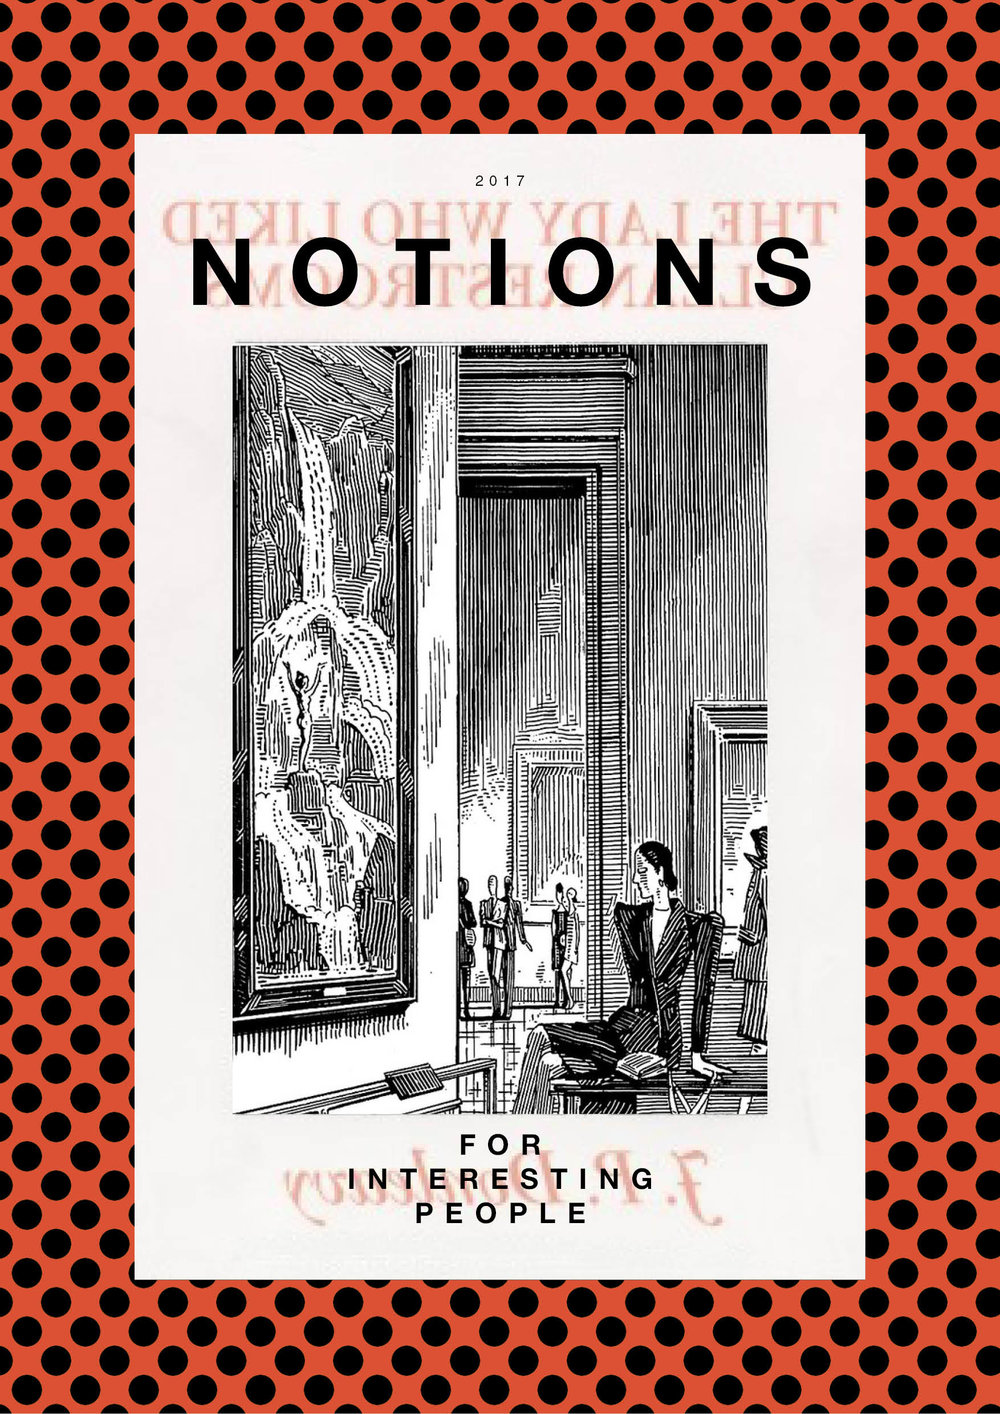 06-17 2017 NOTIONS issue 2 cover.jpg